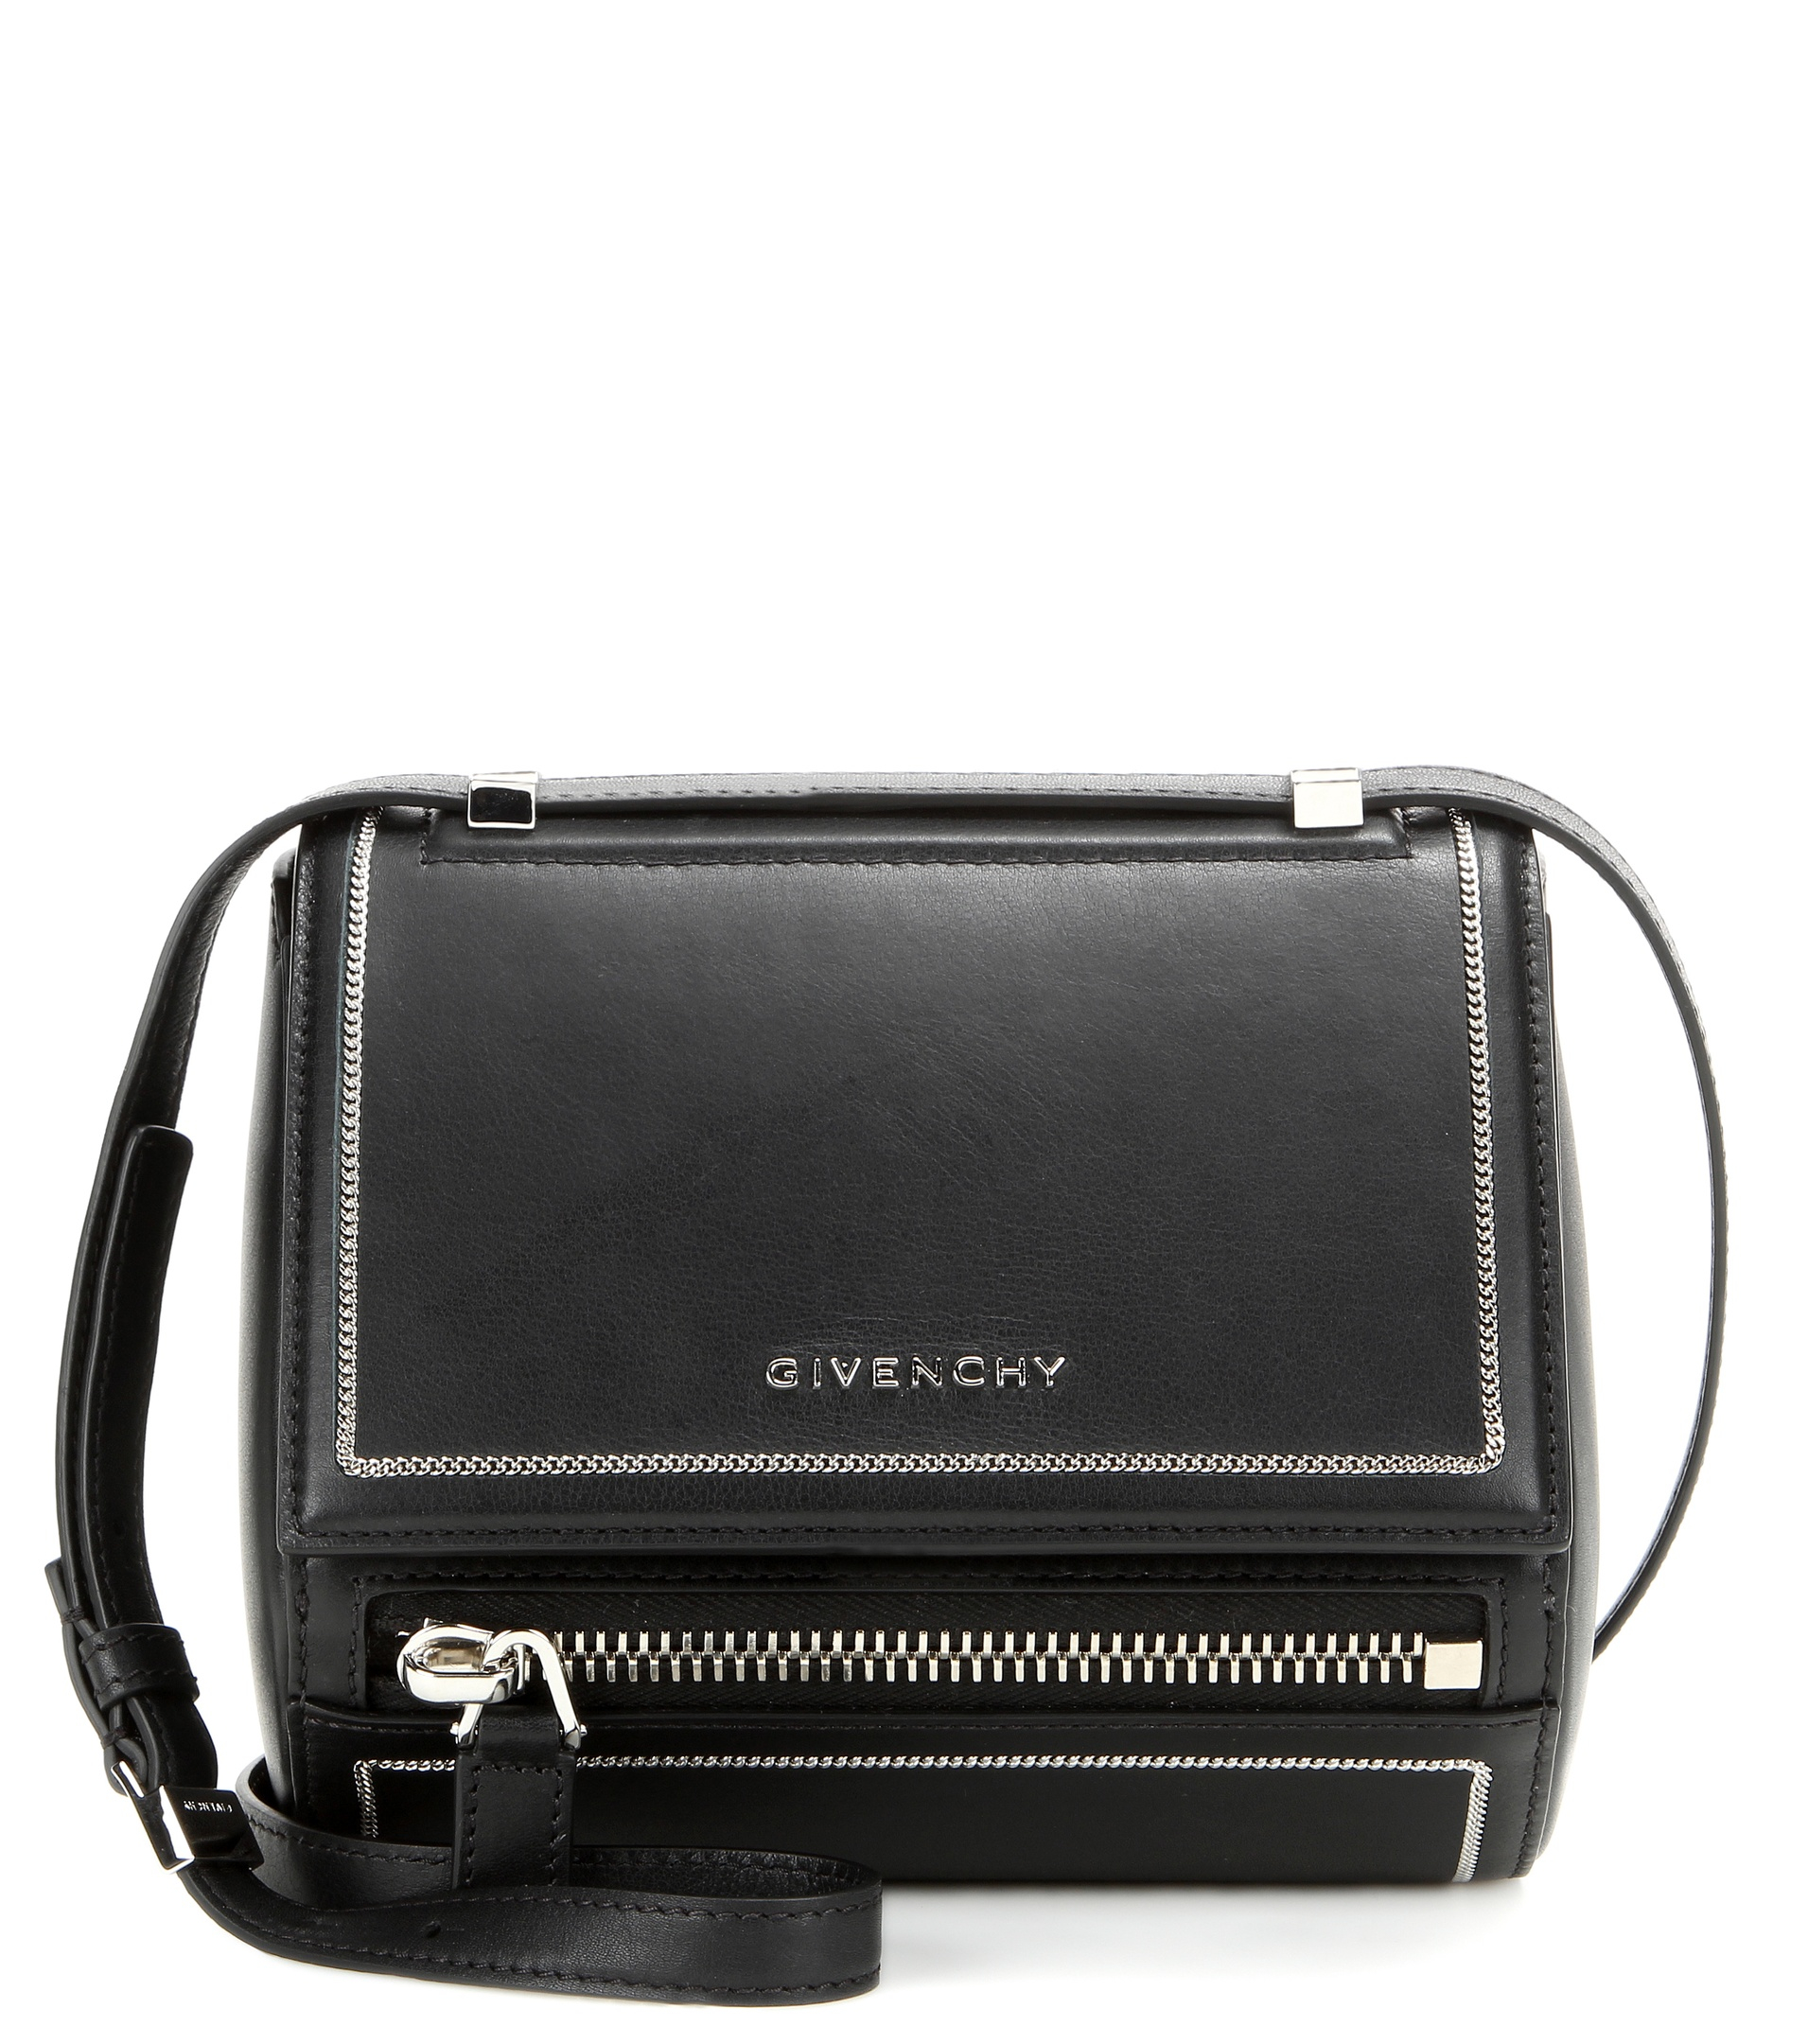 Givenchy Pandora Box Mini Leather Shoulder Bag In Black Lyst